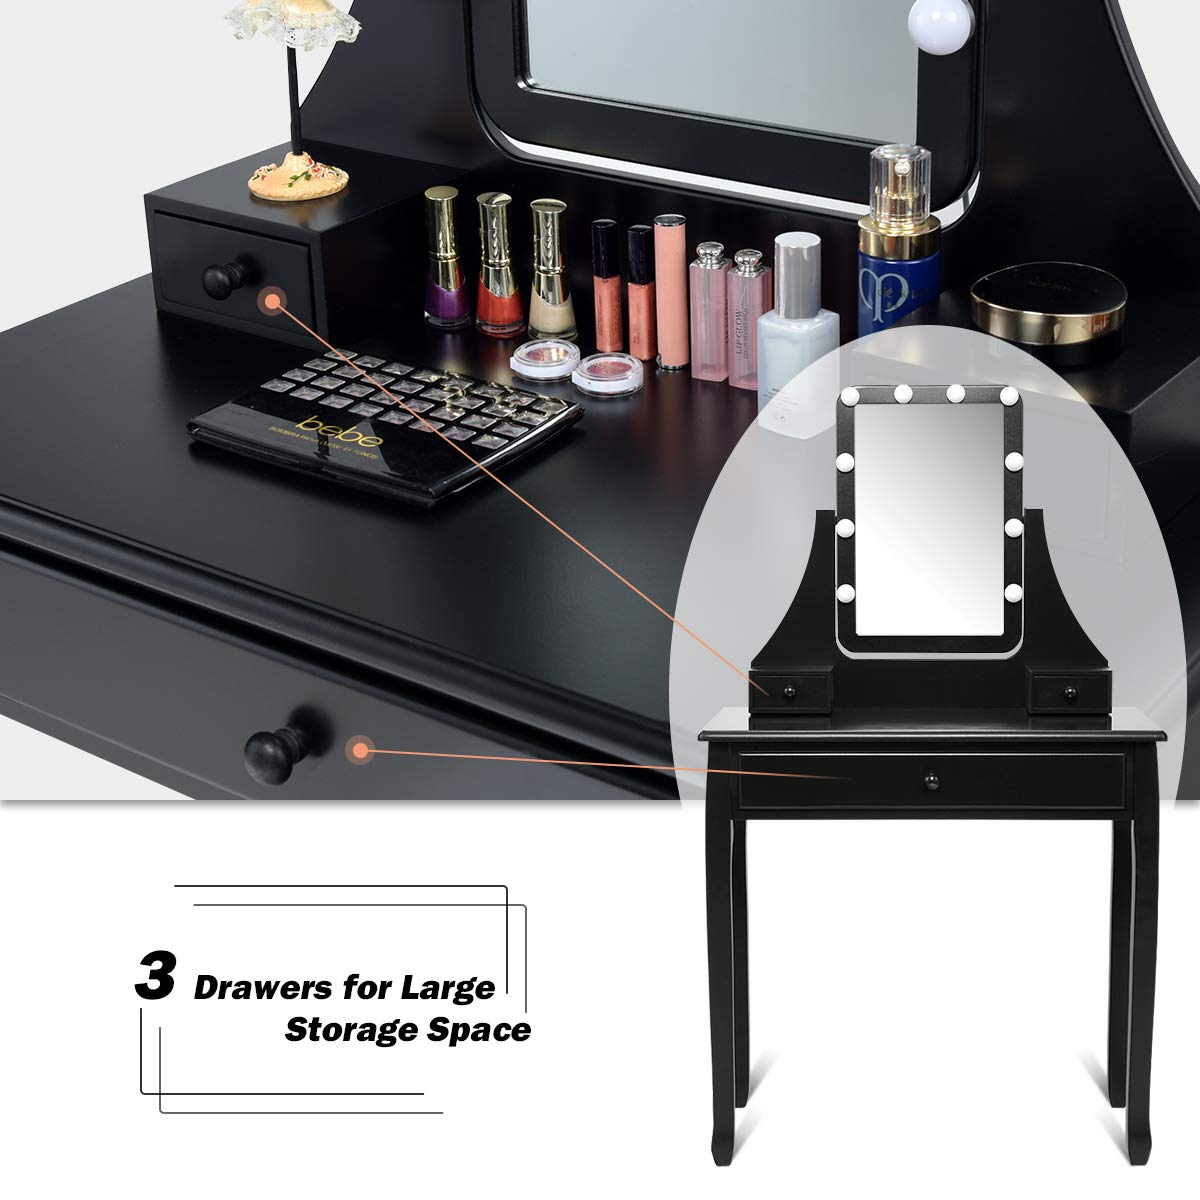 3 Drawers 2 Dividers CHARMAID Vanity Set with Lighted Mirror Makeup Dressing Table with 10 LED Dimmable Bulbs Black Touch Switch Modern Bedroom Makeup Table with Cushioned Stool for Women Girls